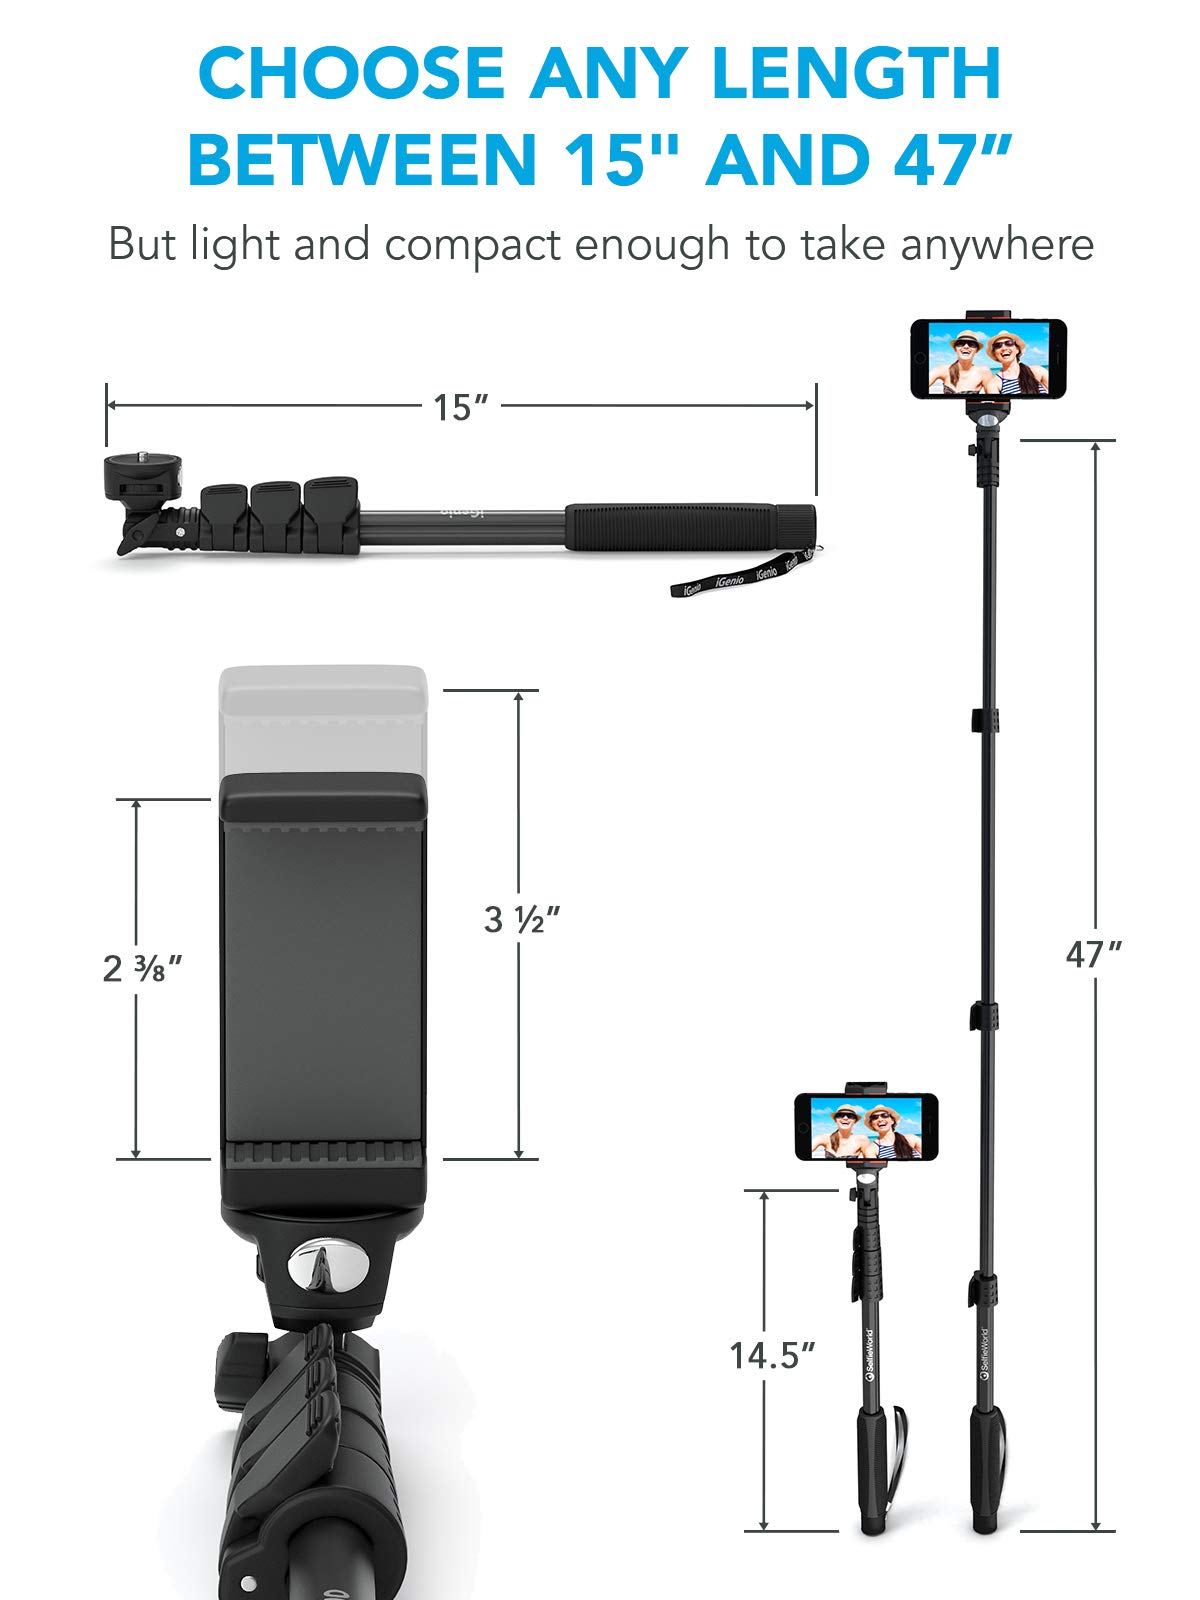 Professional 10-in-1 Monopod Selfie Stick for All GoPro Hero, Action Cameras, Cellphones, Digital Compacts with Bluetooth Remote Shutter - Extends 15''- 47'', Weatherproof Shockproof - Take It Anywhere by Selfie World (Image #5)